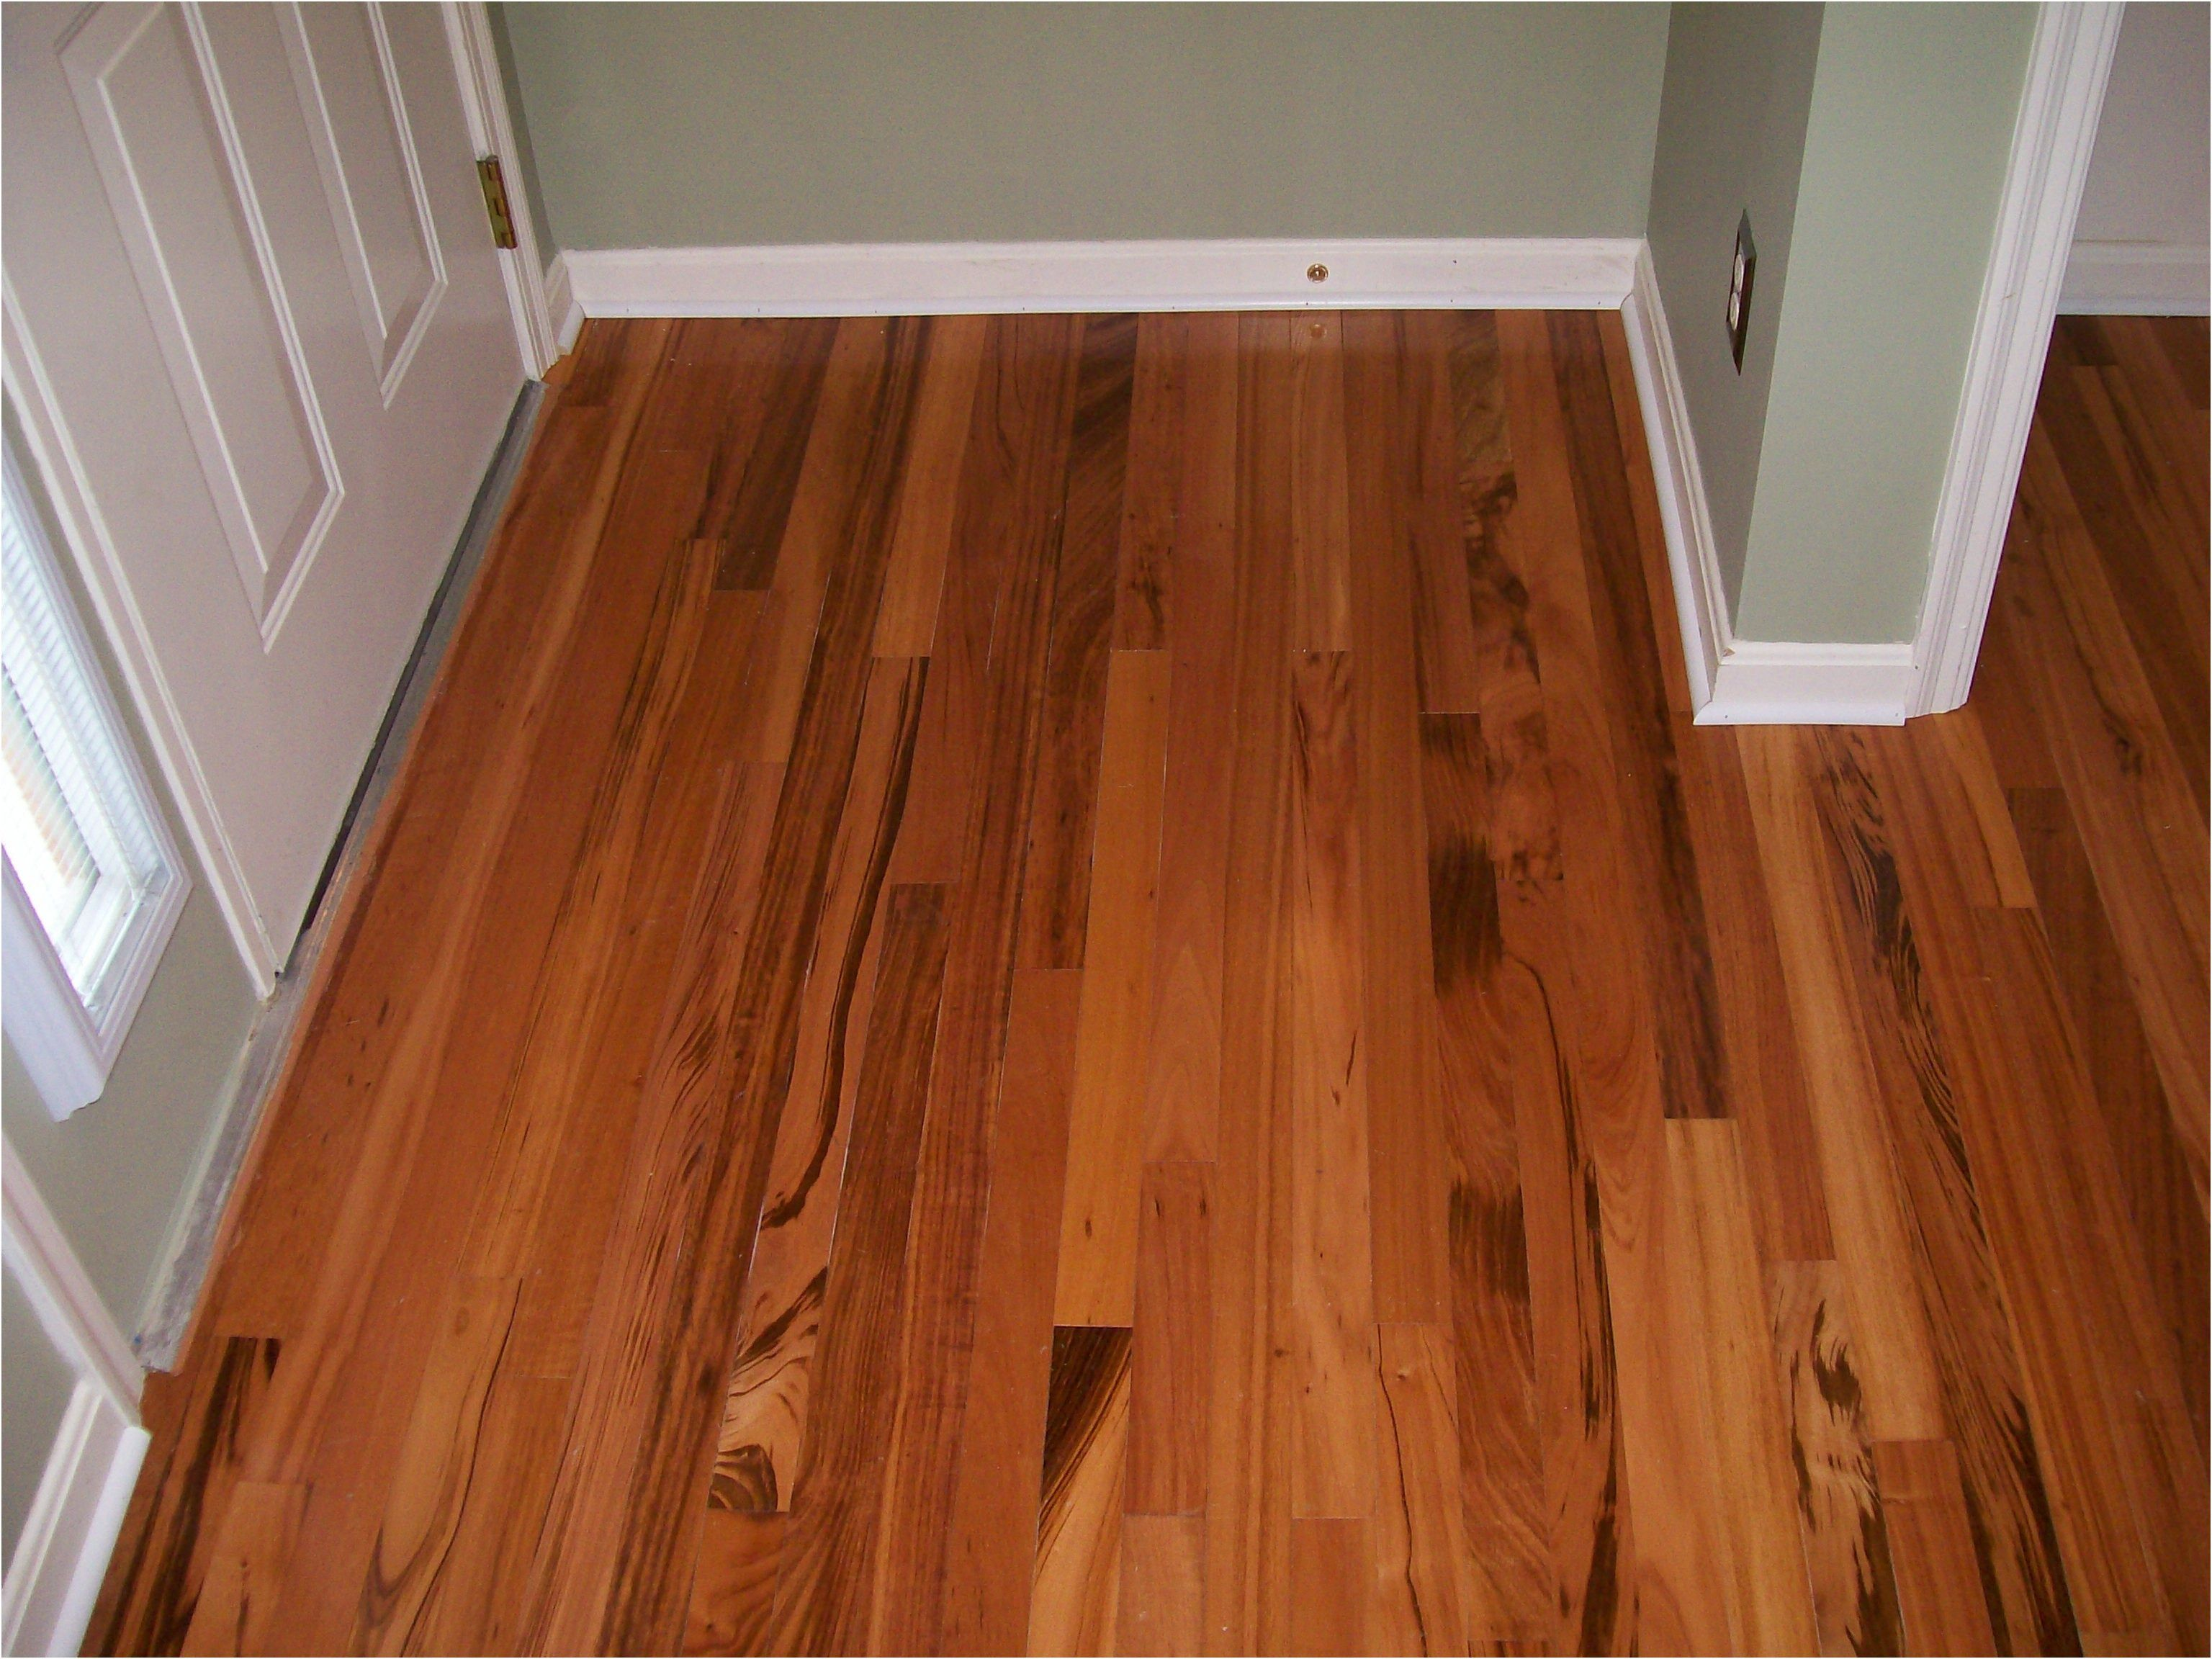 27 Elegant somerset Red Oak Hardwood Flooring in 2020